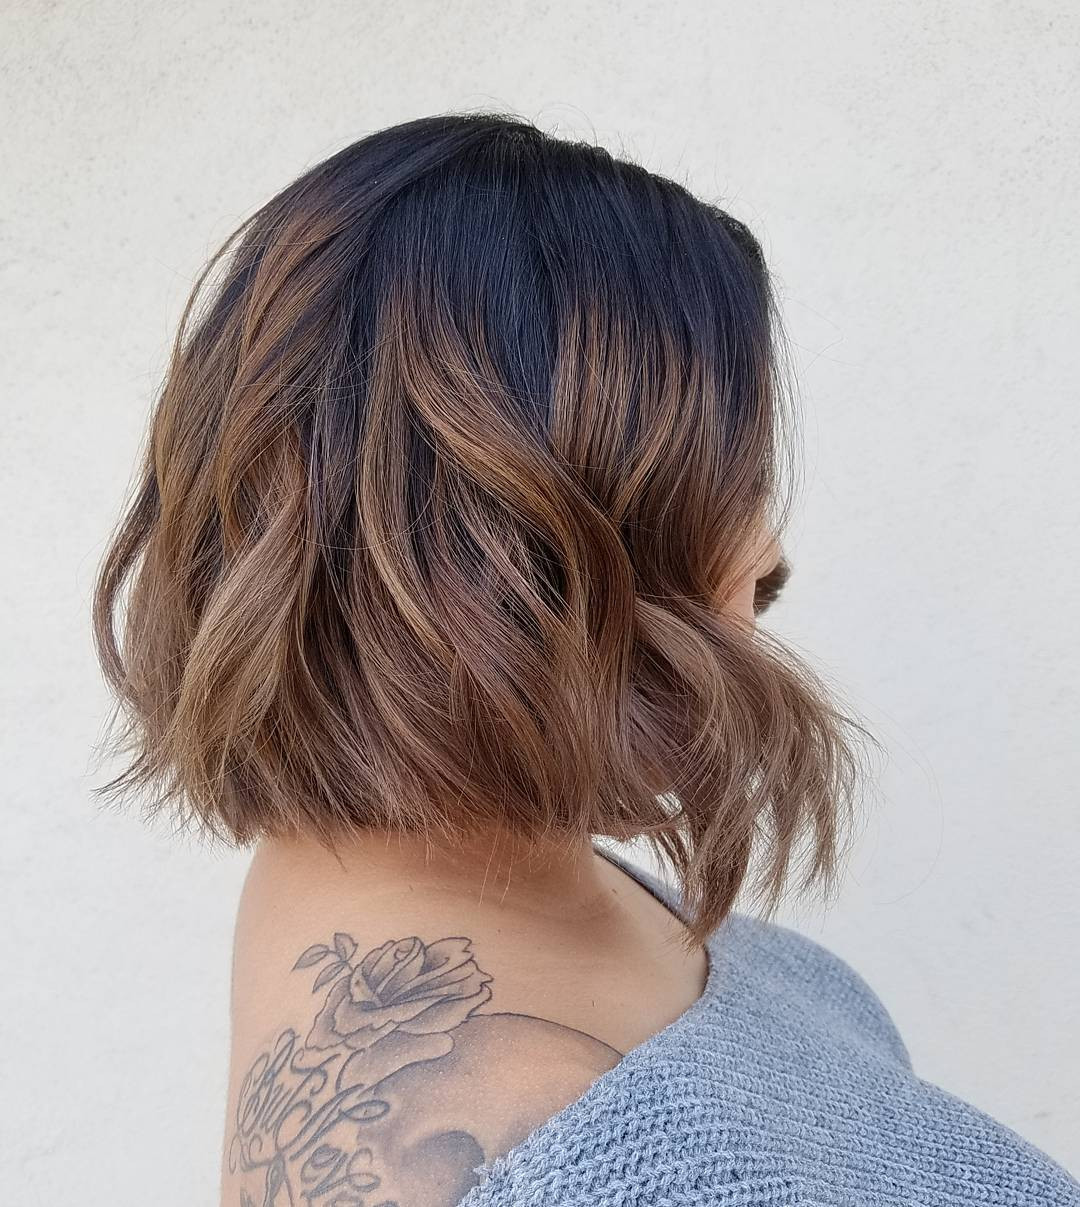 Best ideas about Hairstyle 2019 Female . Save or Pin 100 Hottest Short Hairstyles for 2019 Best Short Now.